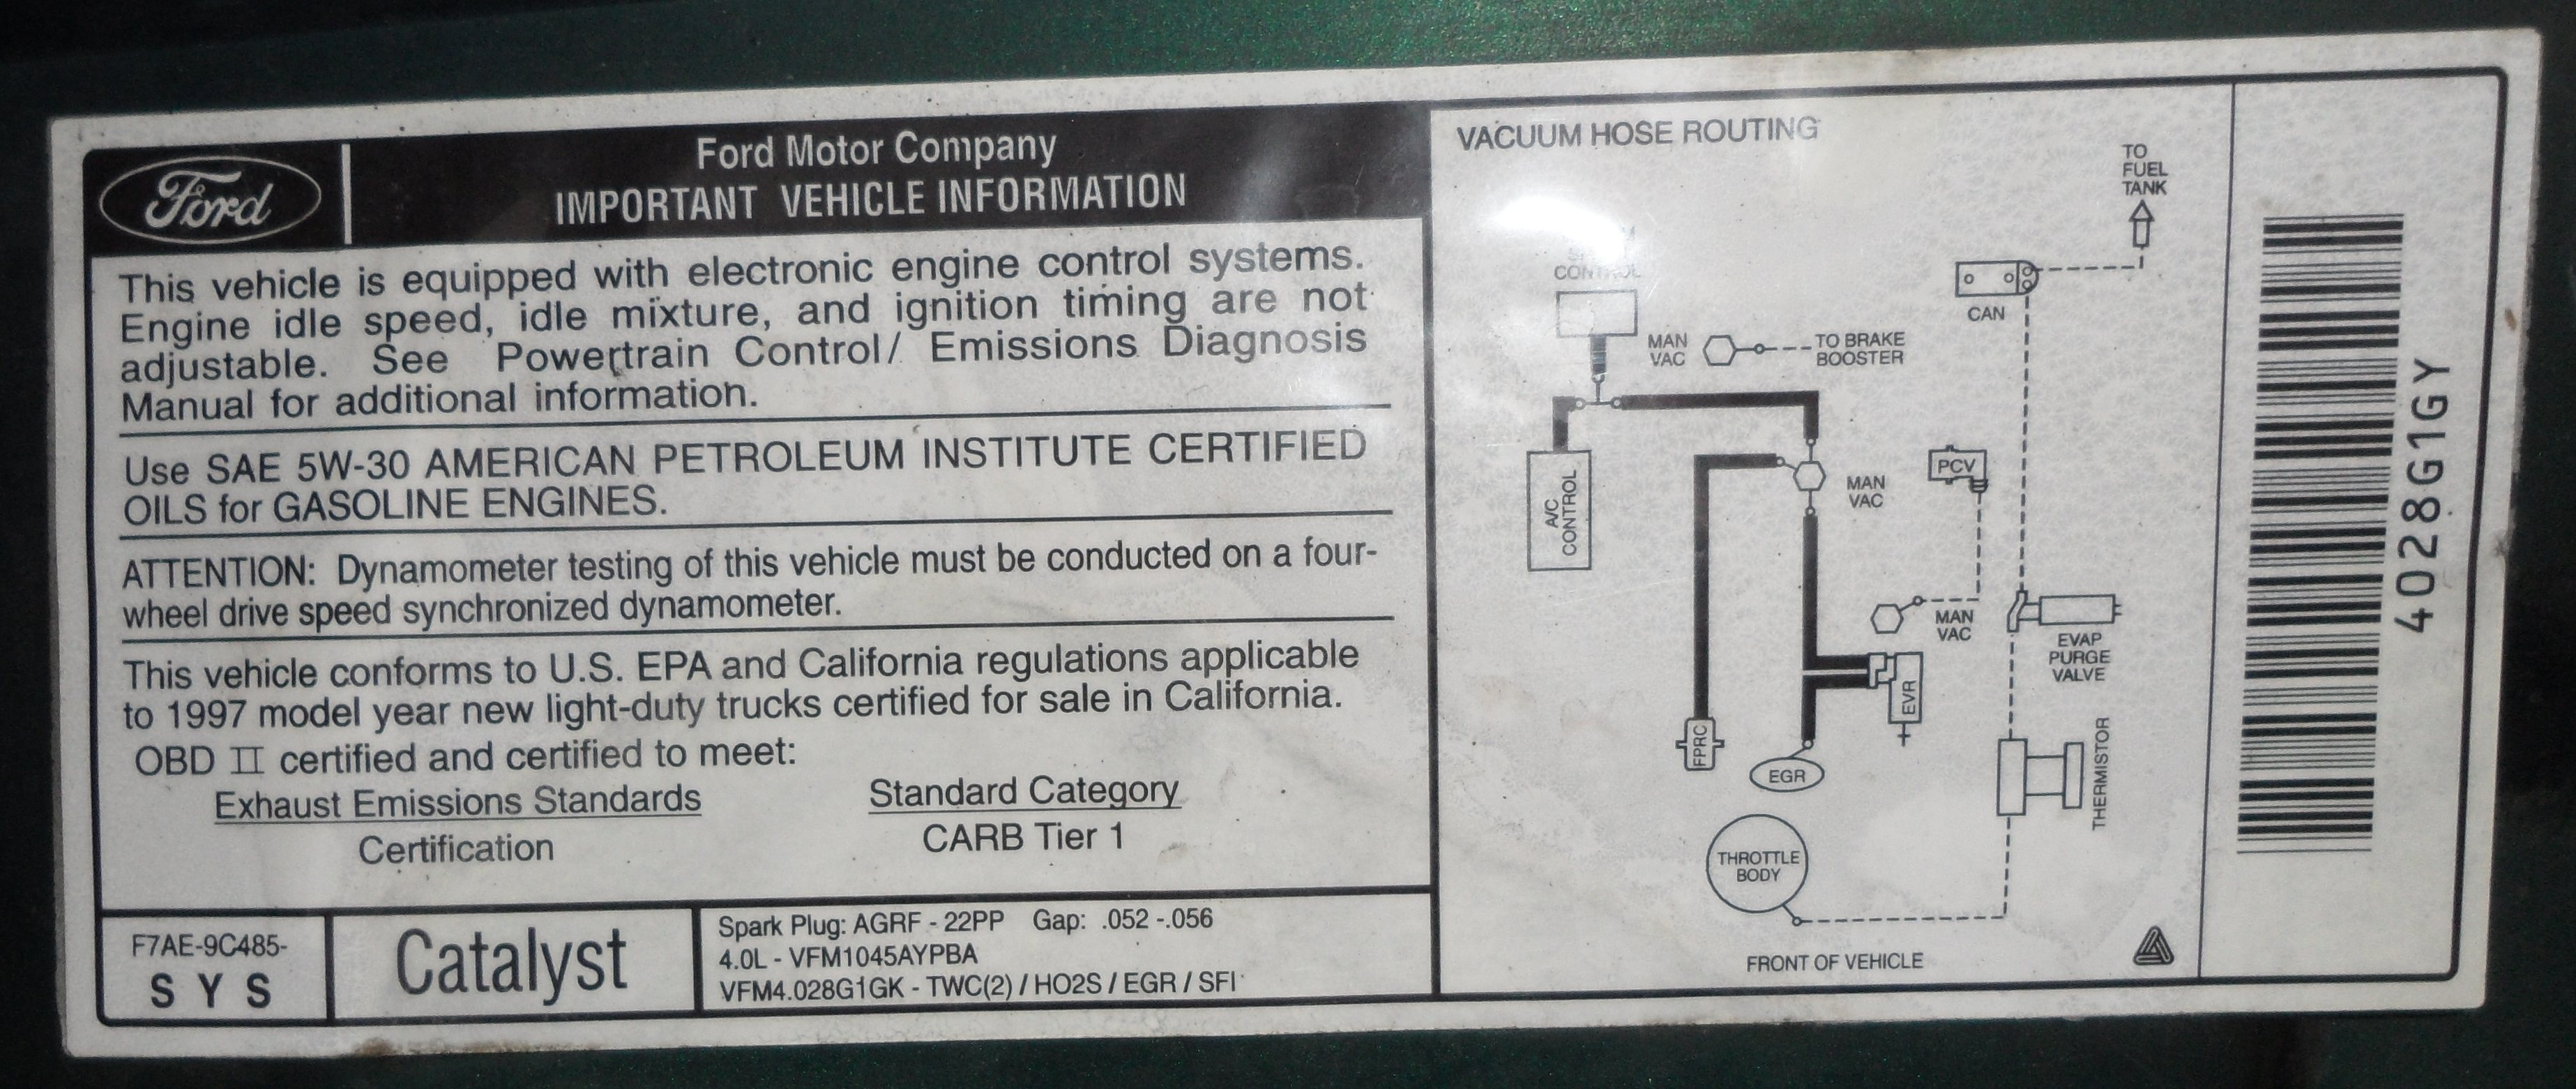 ford ranger 2 3 engine diagram dfd context important tune up information - page truck enthusiasts forums